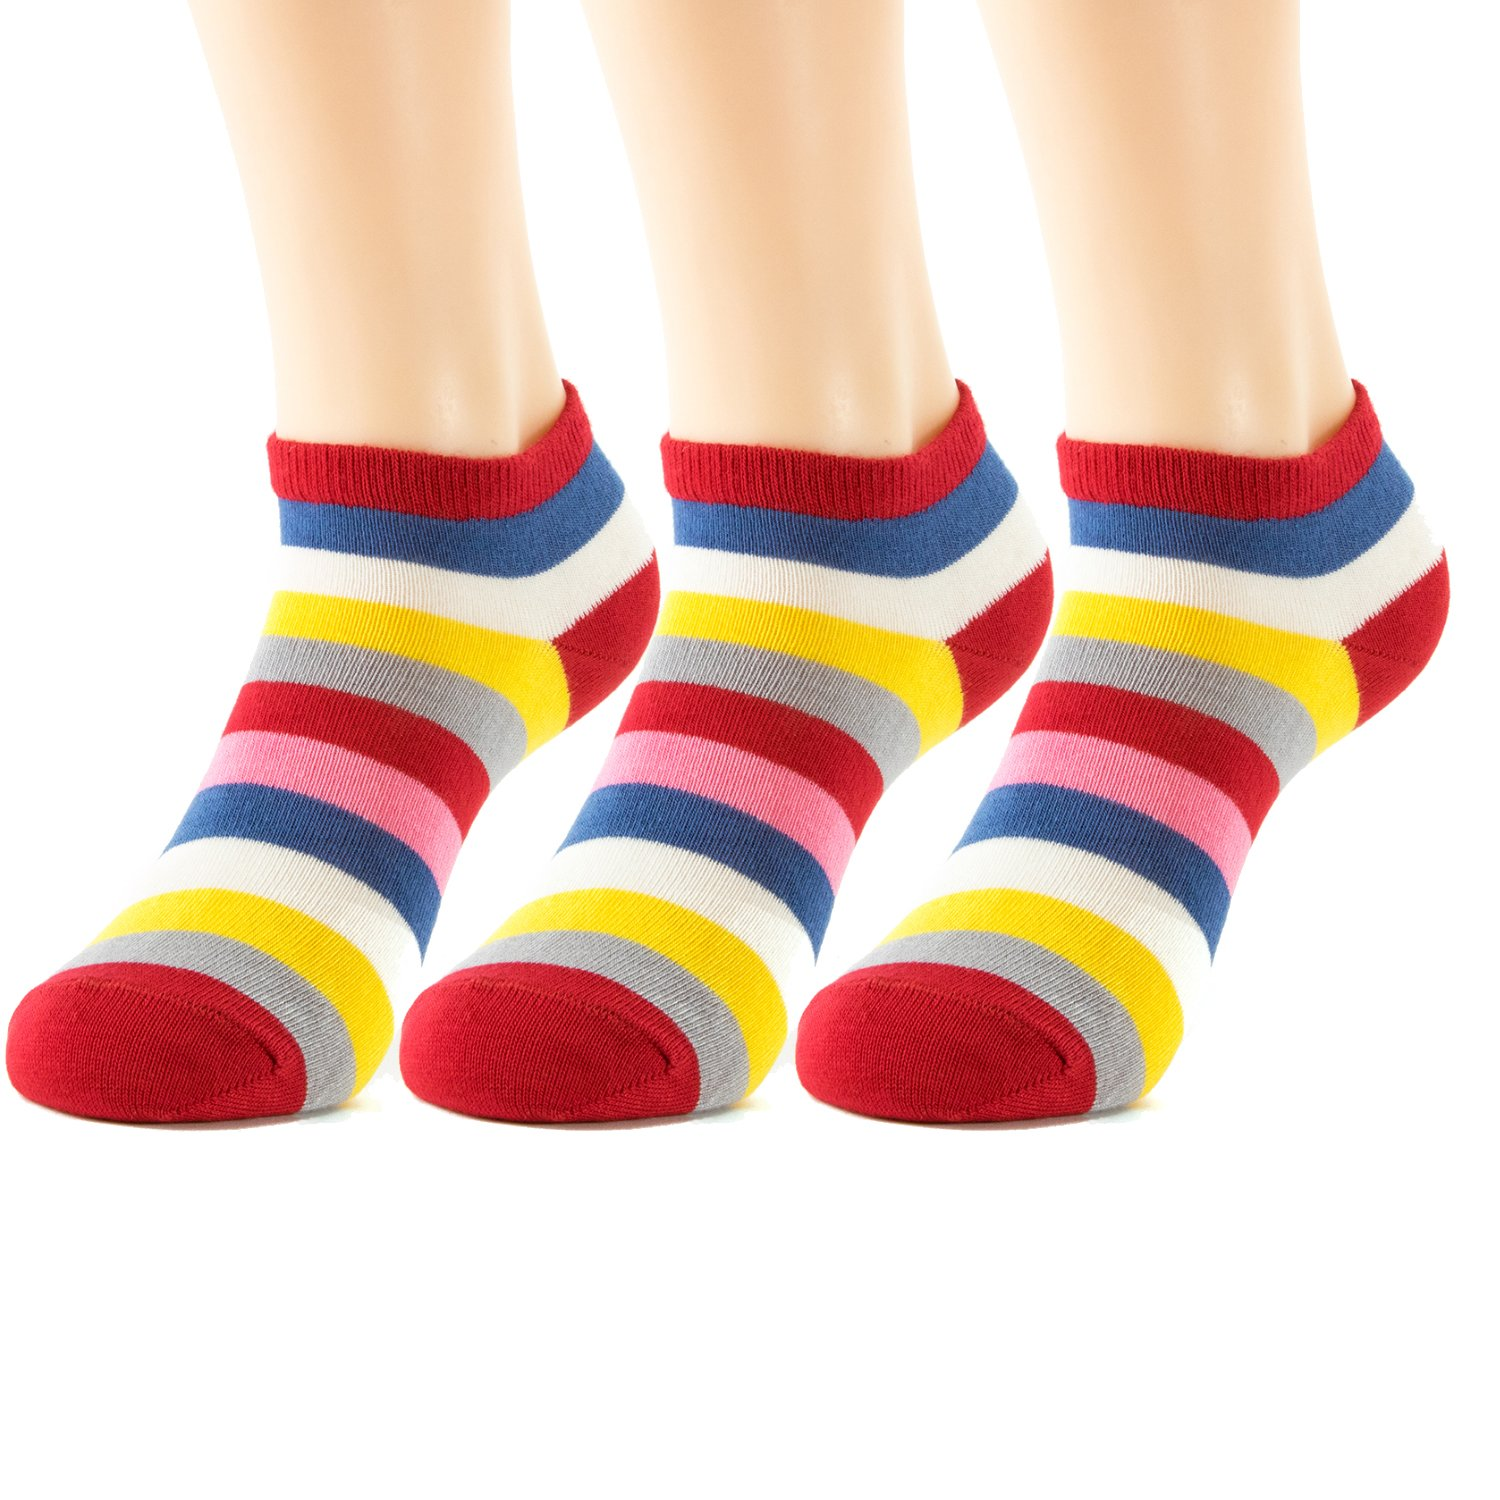 Natural Underwear SOCKSHOSIERY ユニセックスアダルト B07842JW8Y L|Rainbow Colors Rainbow Colors L